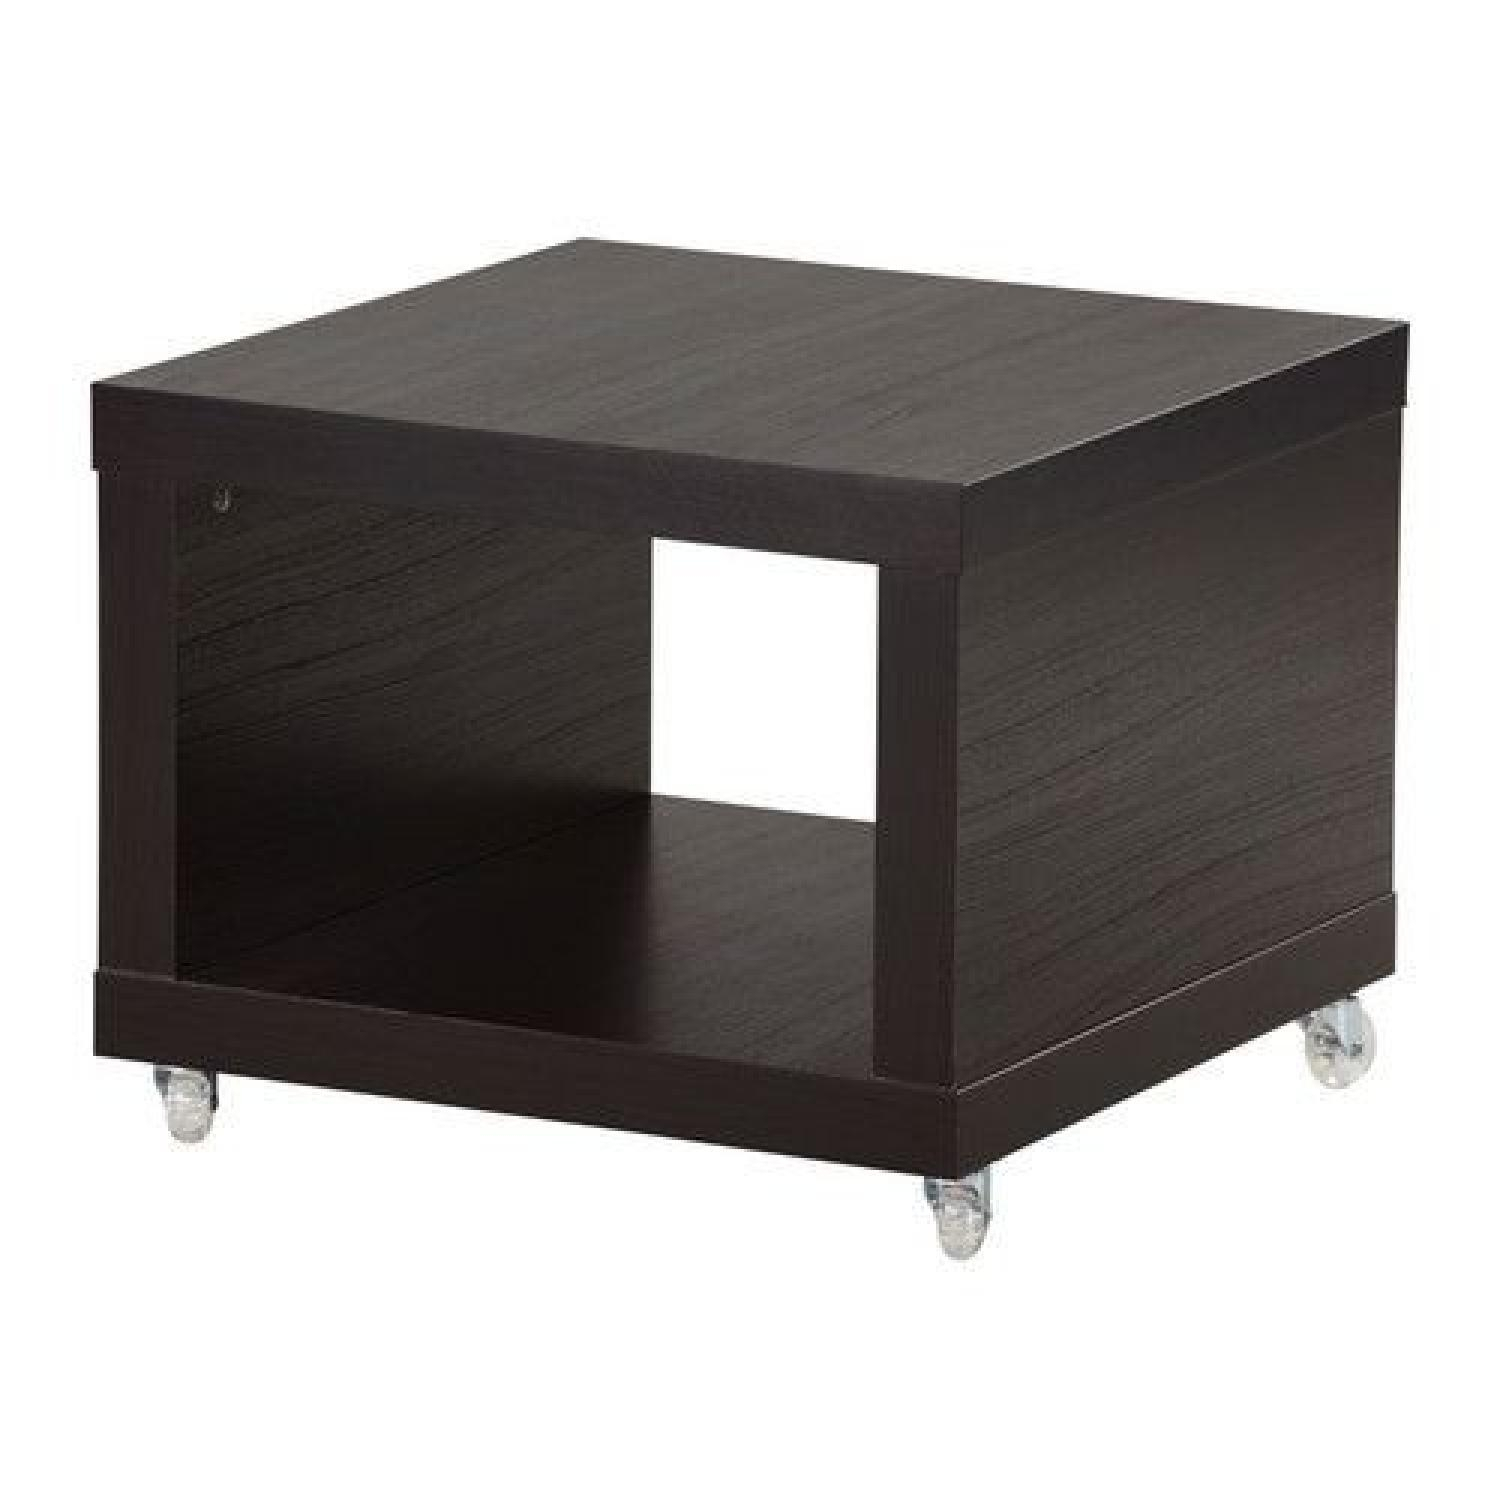 small table with wheels ideas on foter